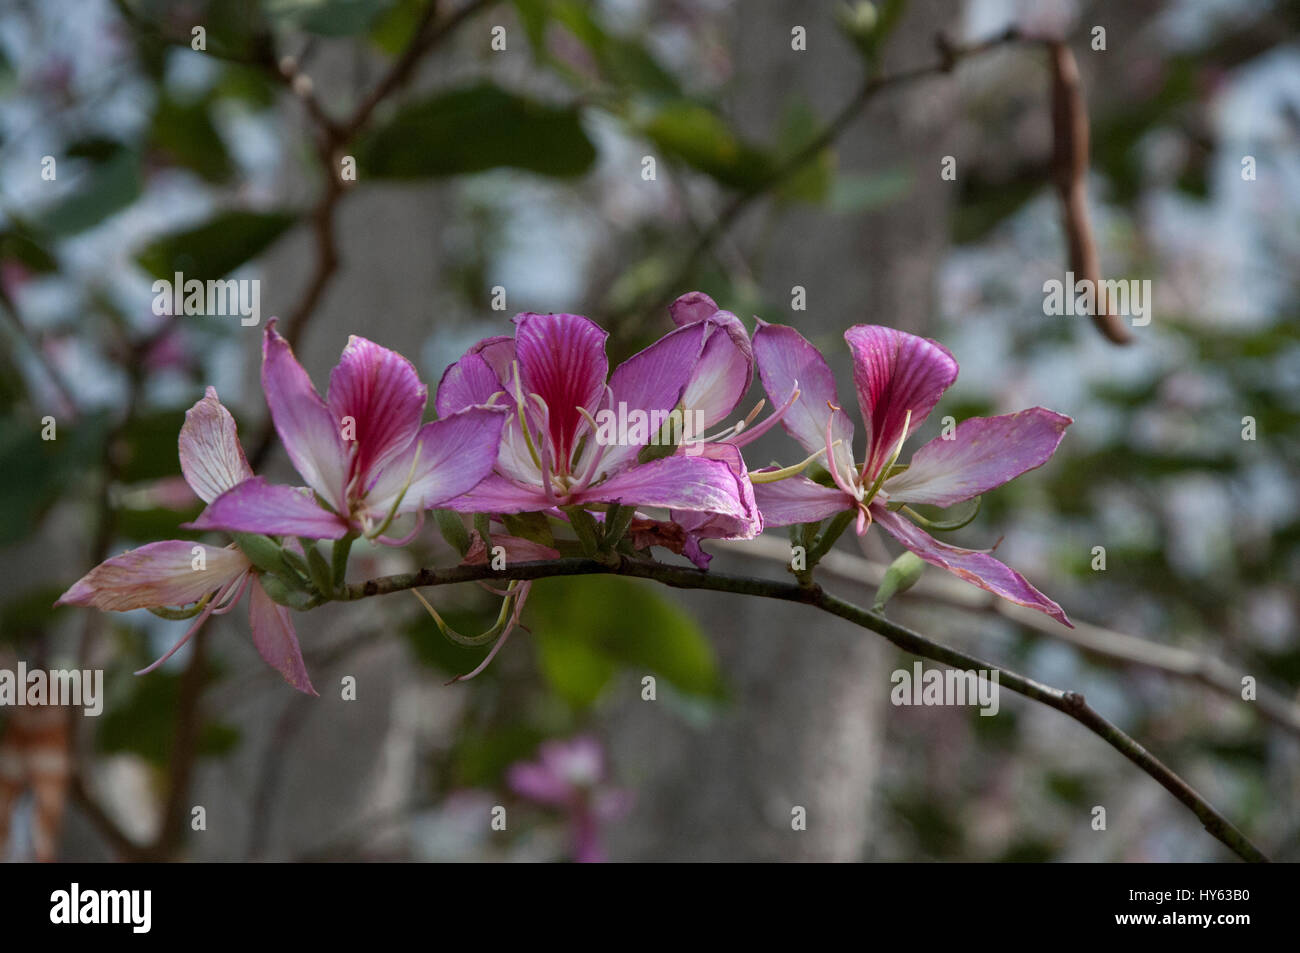 Hawaiian flowers growing on tree limb hawaii usa stock photo hawaiian flowers growing on tree limb hawaii usa izmirmasajfo